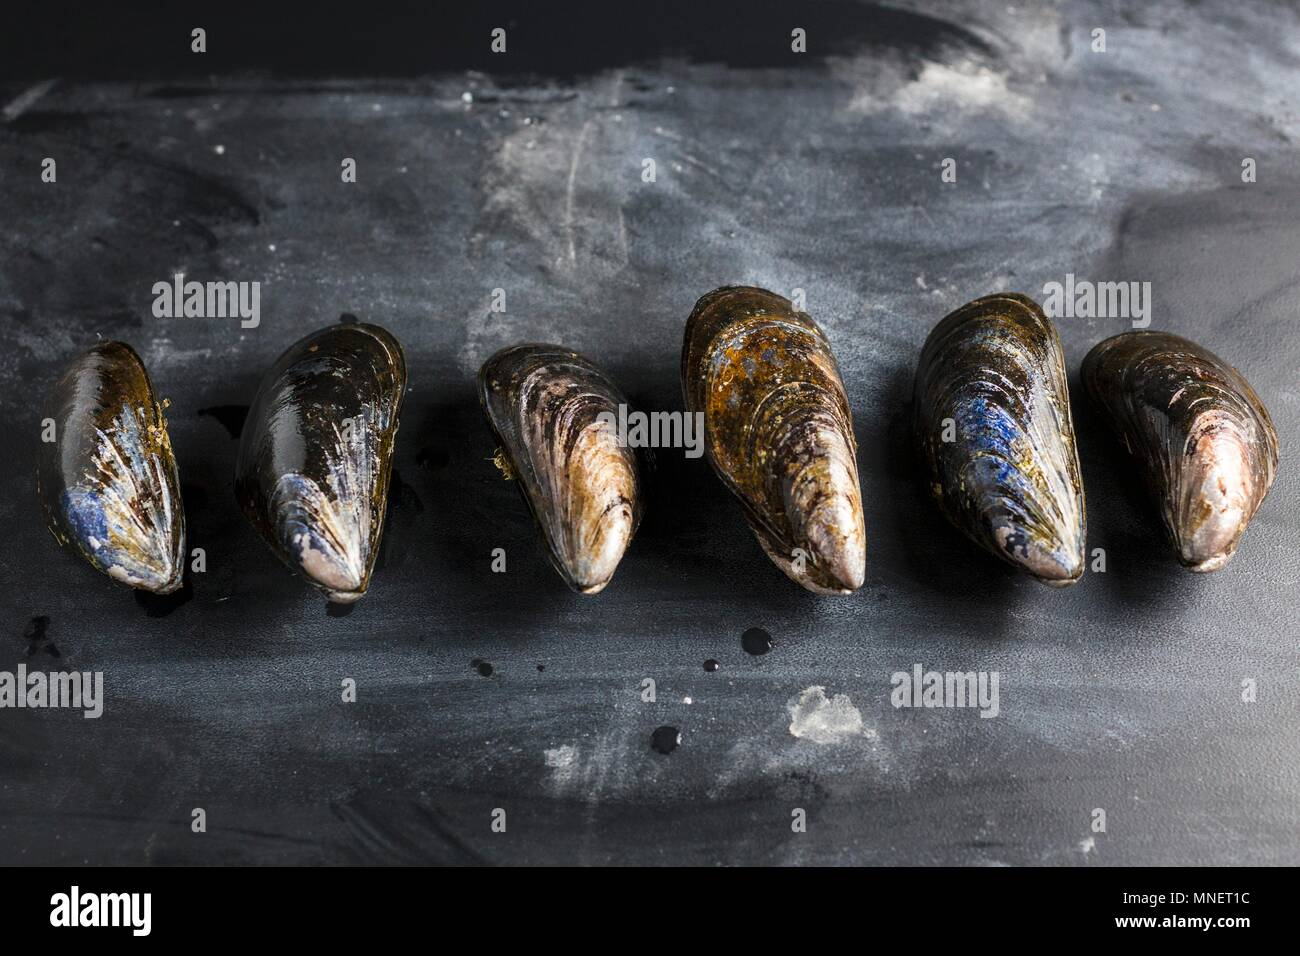 A row of mussels on a slate slab - Stock Image